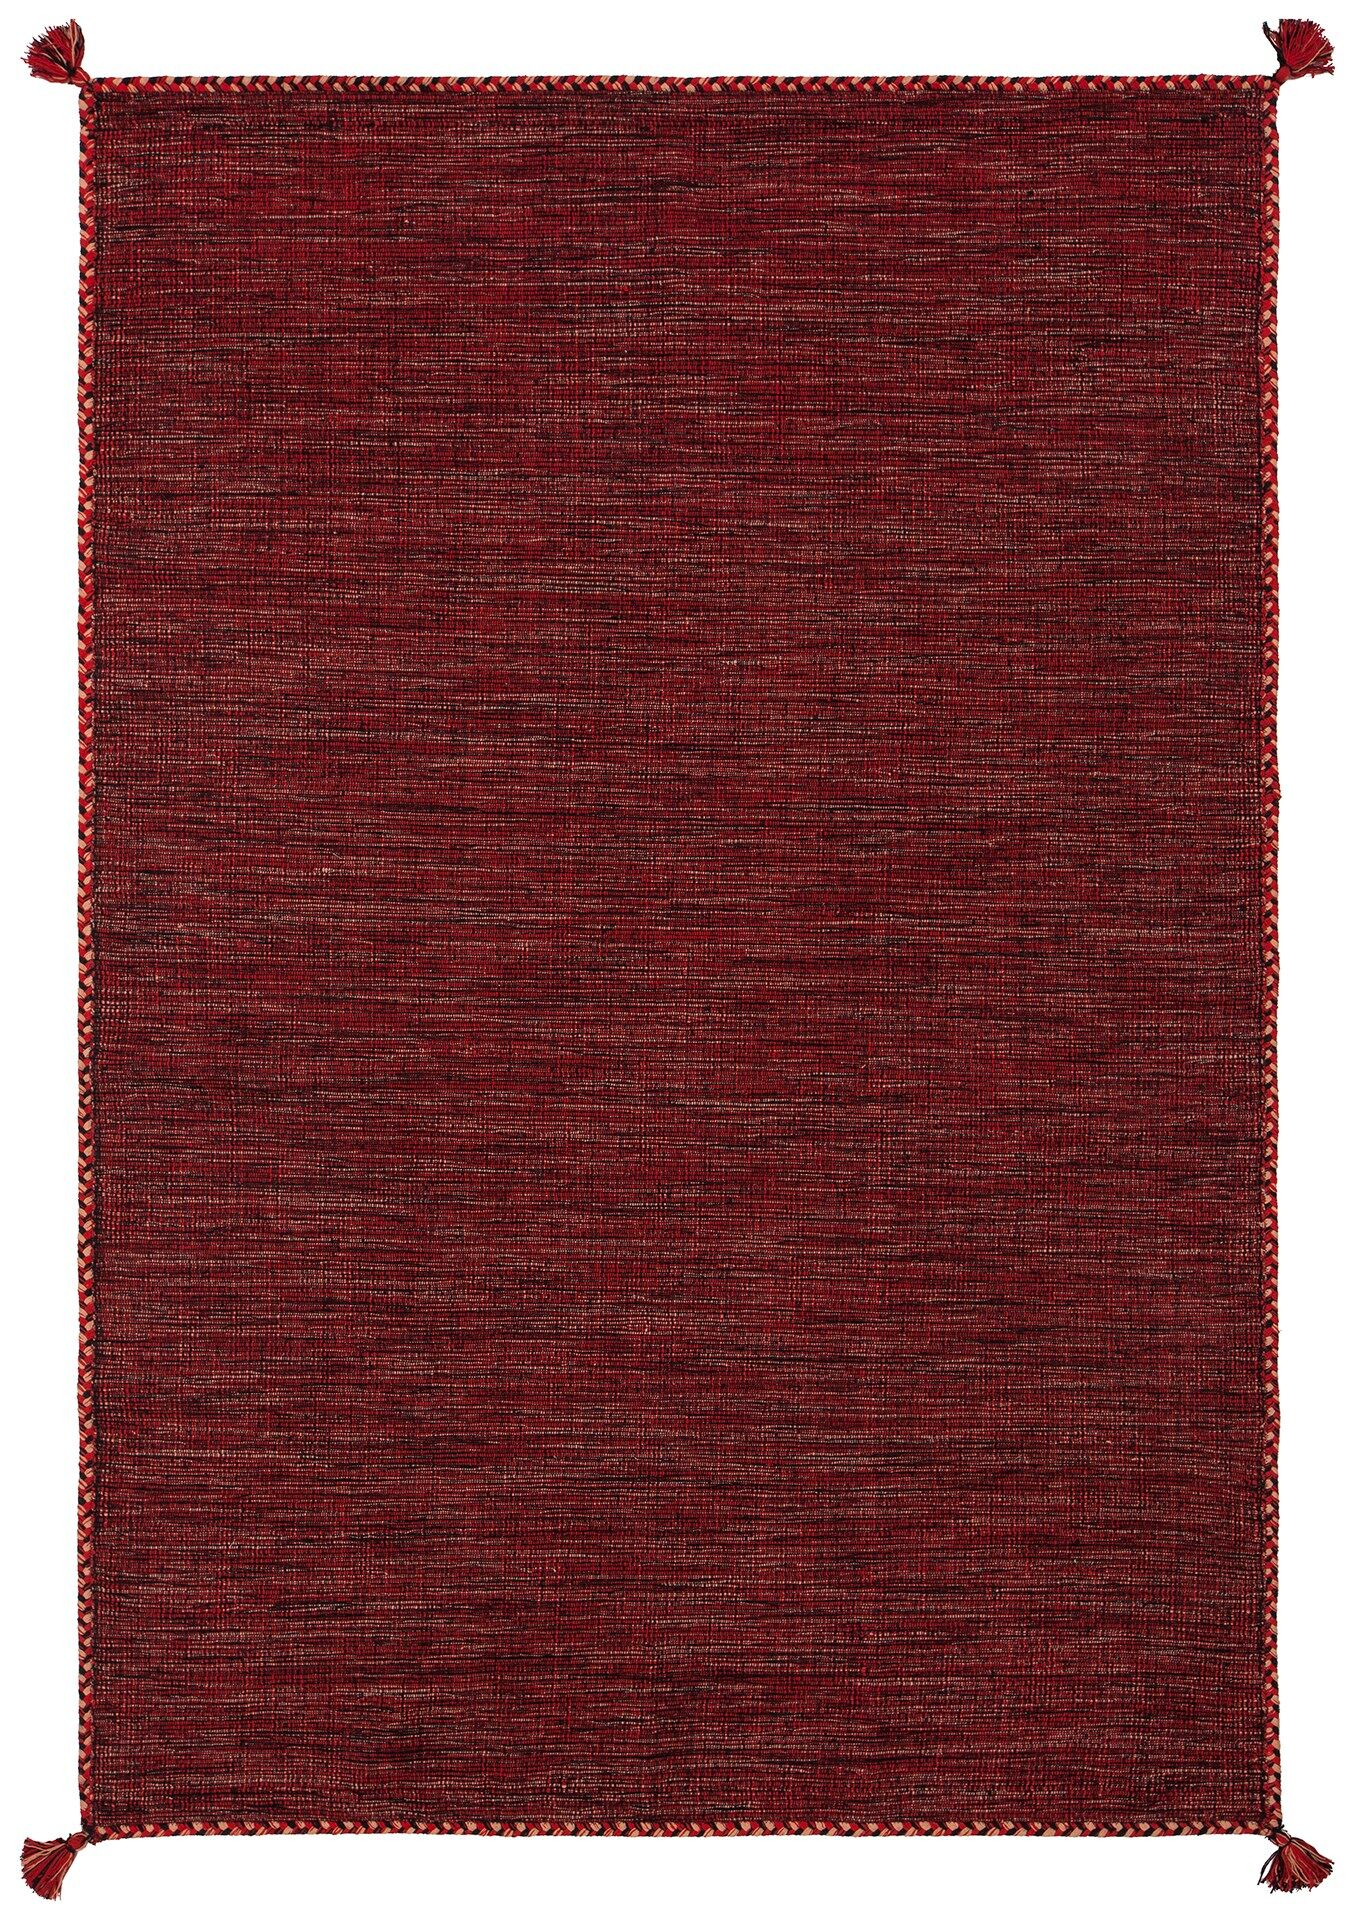 Dario Hand-Woven Red Area Rug Rug Size: Rectangle 5' x 7'6